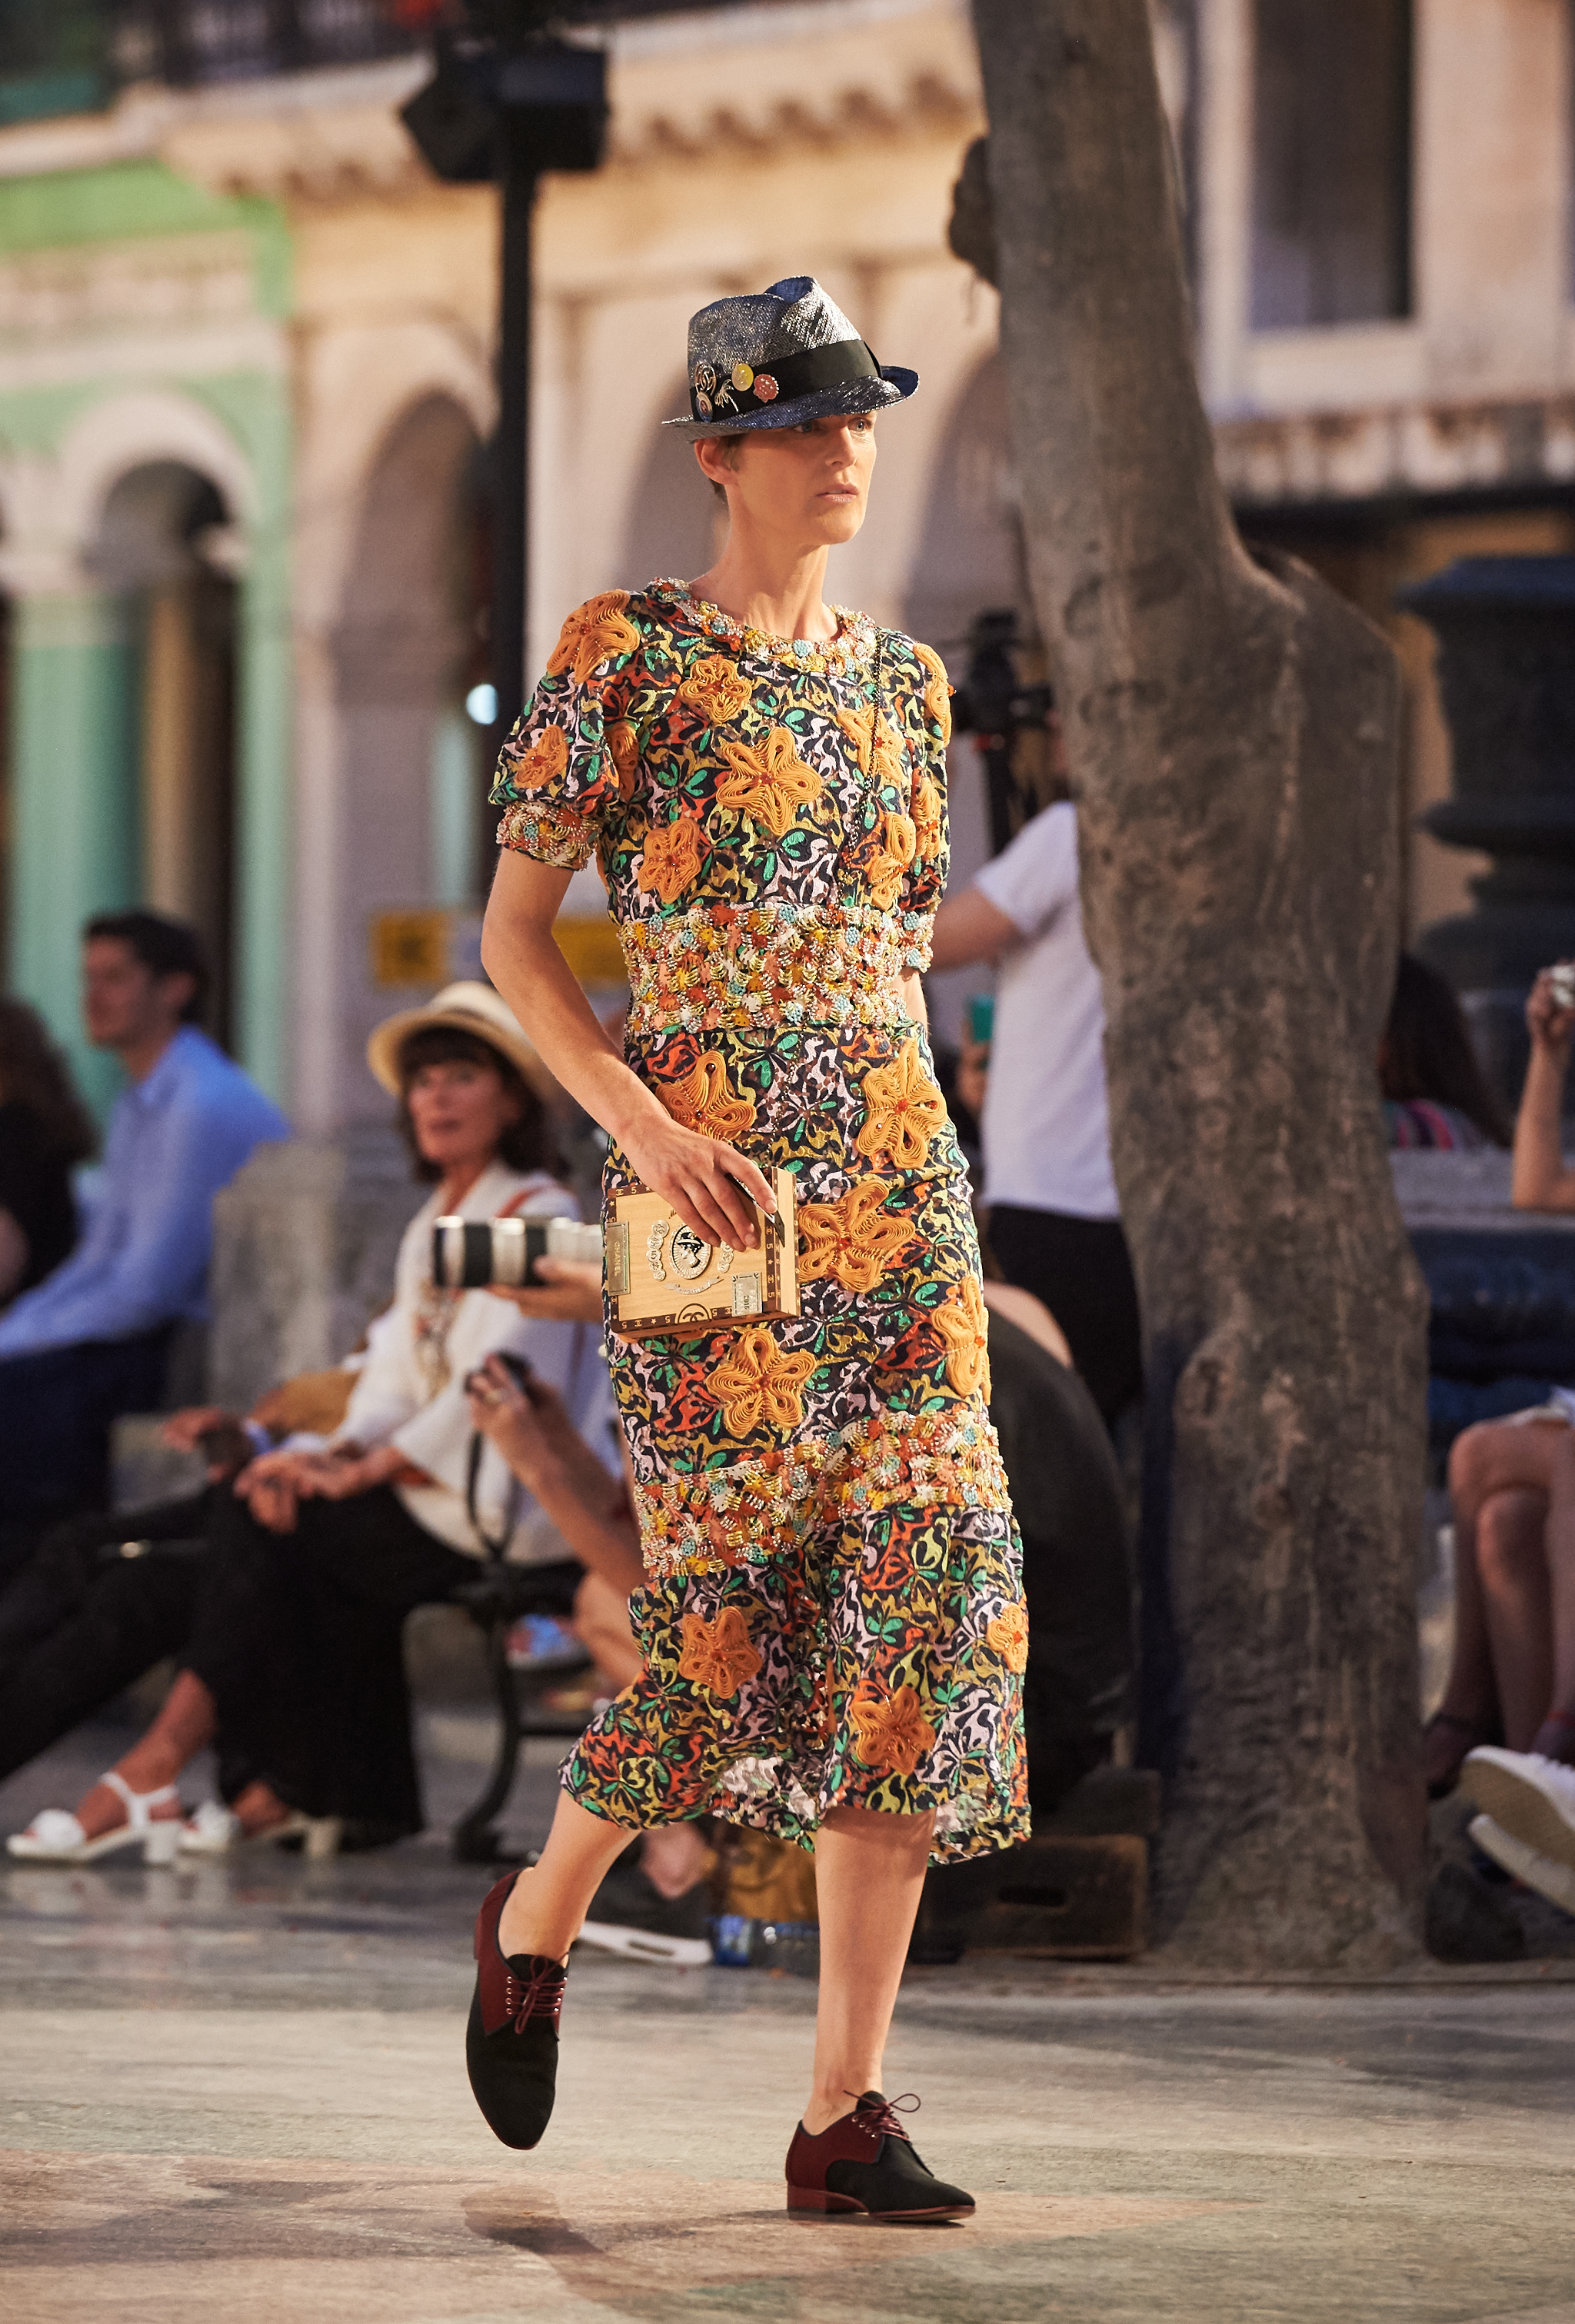 06_Cruise 2016-17 collection - Show pictures by Olivier Saillant - Look 48.jpg